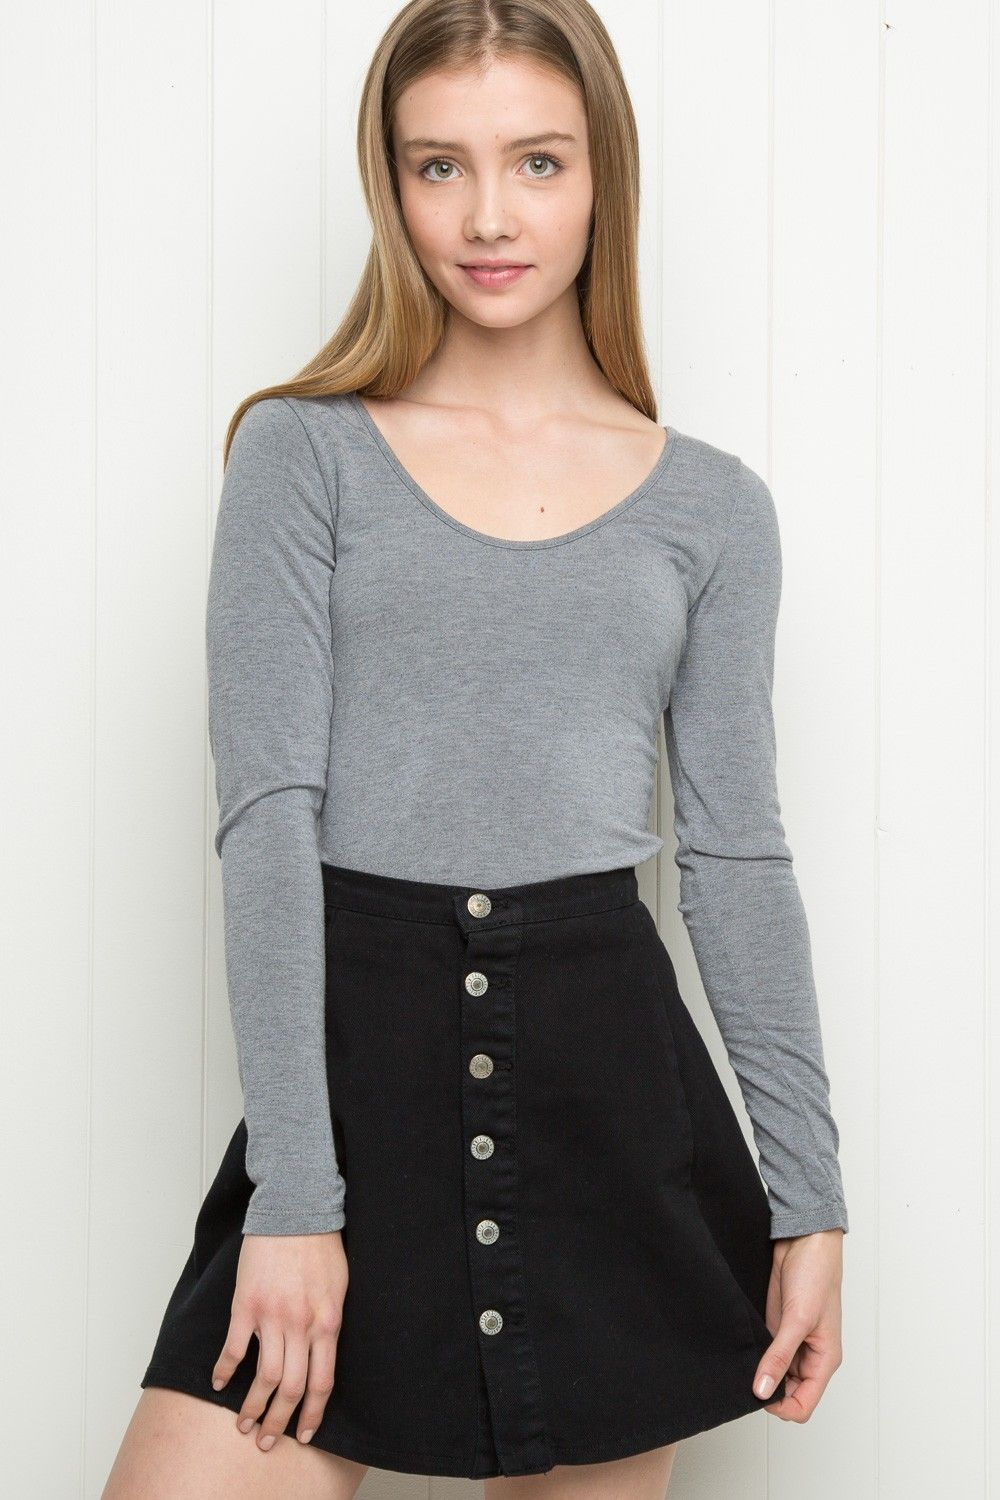 Brandy ♥ Melville | Danica Denim Skirt - Just In DANICA DENIM ...